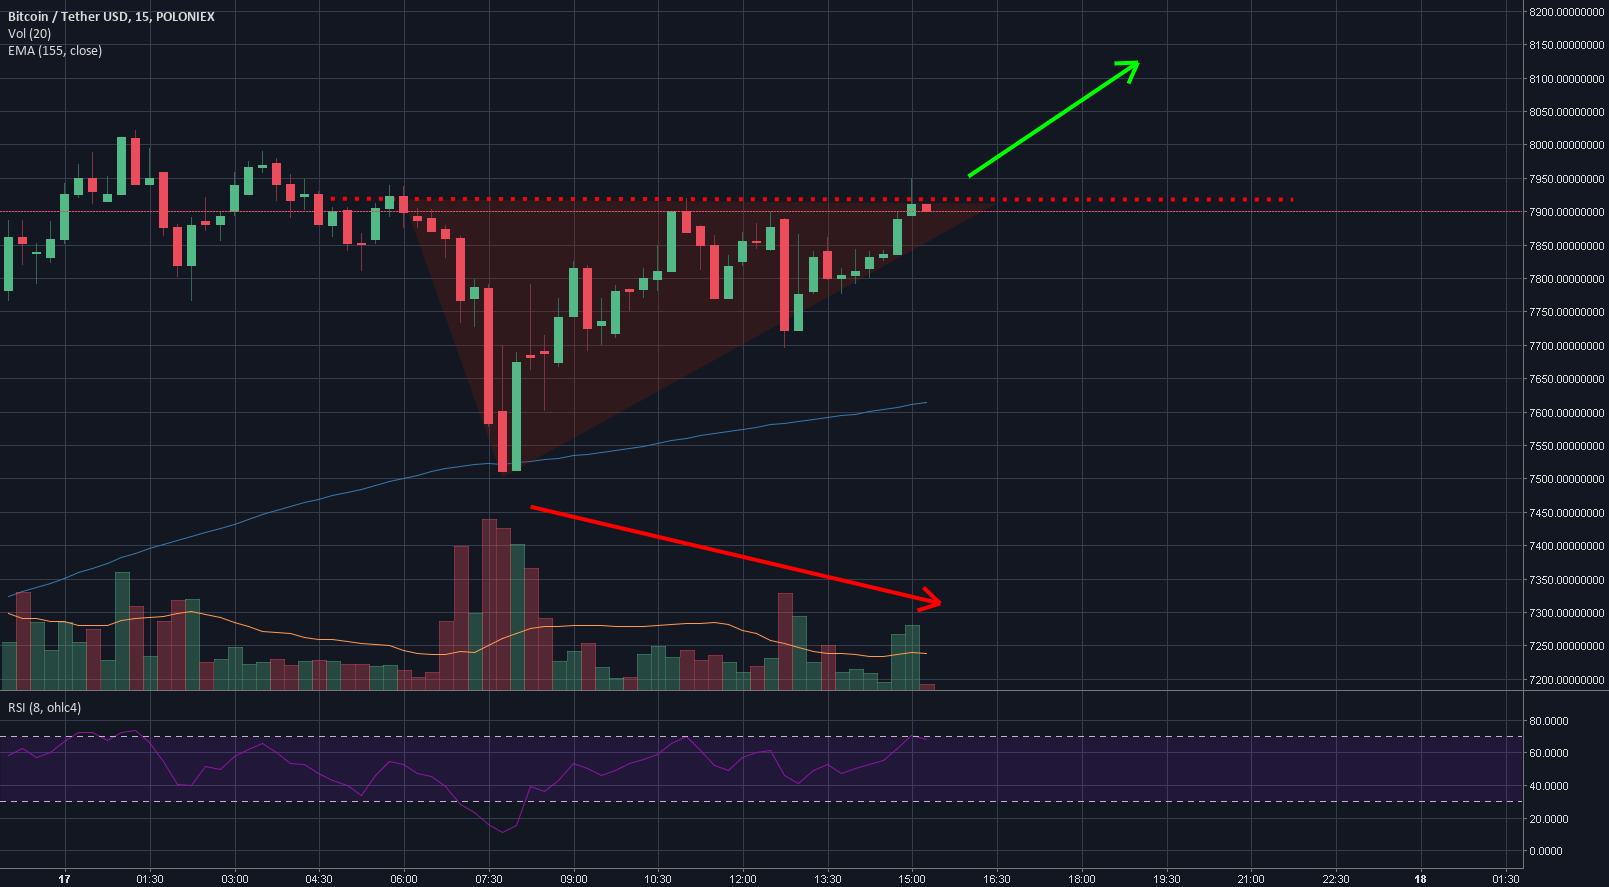 Textbook Ascending Triangle, Let the Bulls Out (Inverse H&S)